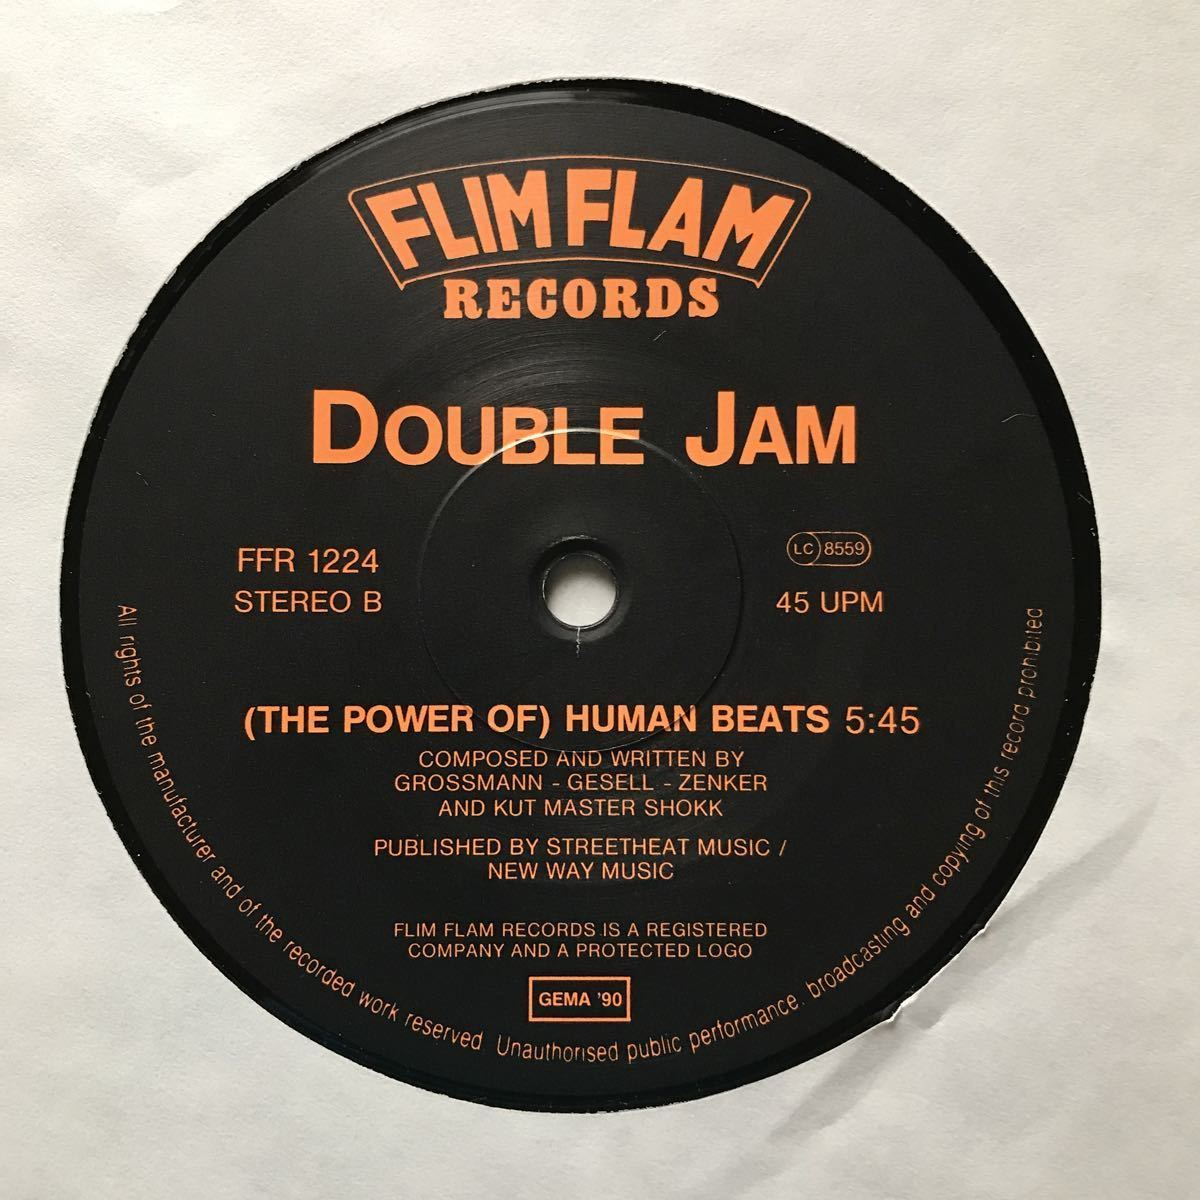 【r&b】Double Jam / The Power Of Human Nature[12inch]オリジナル盤《9595》